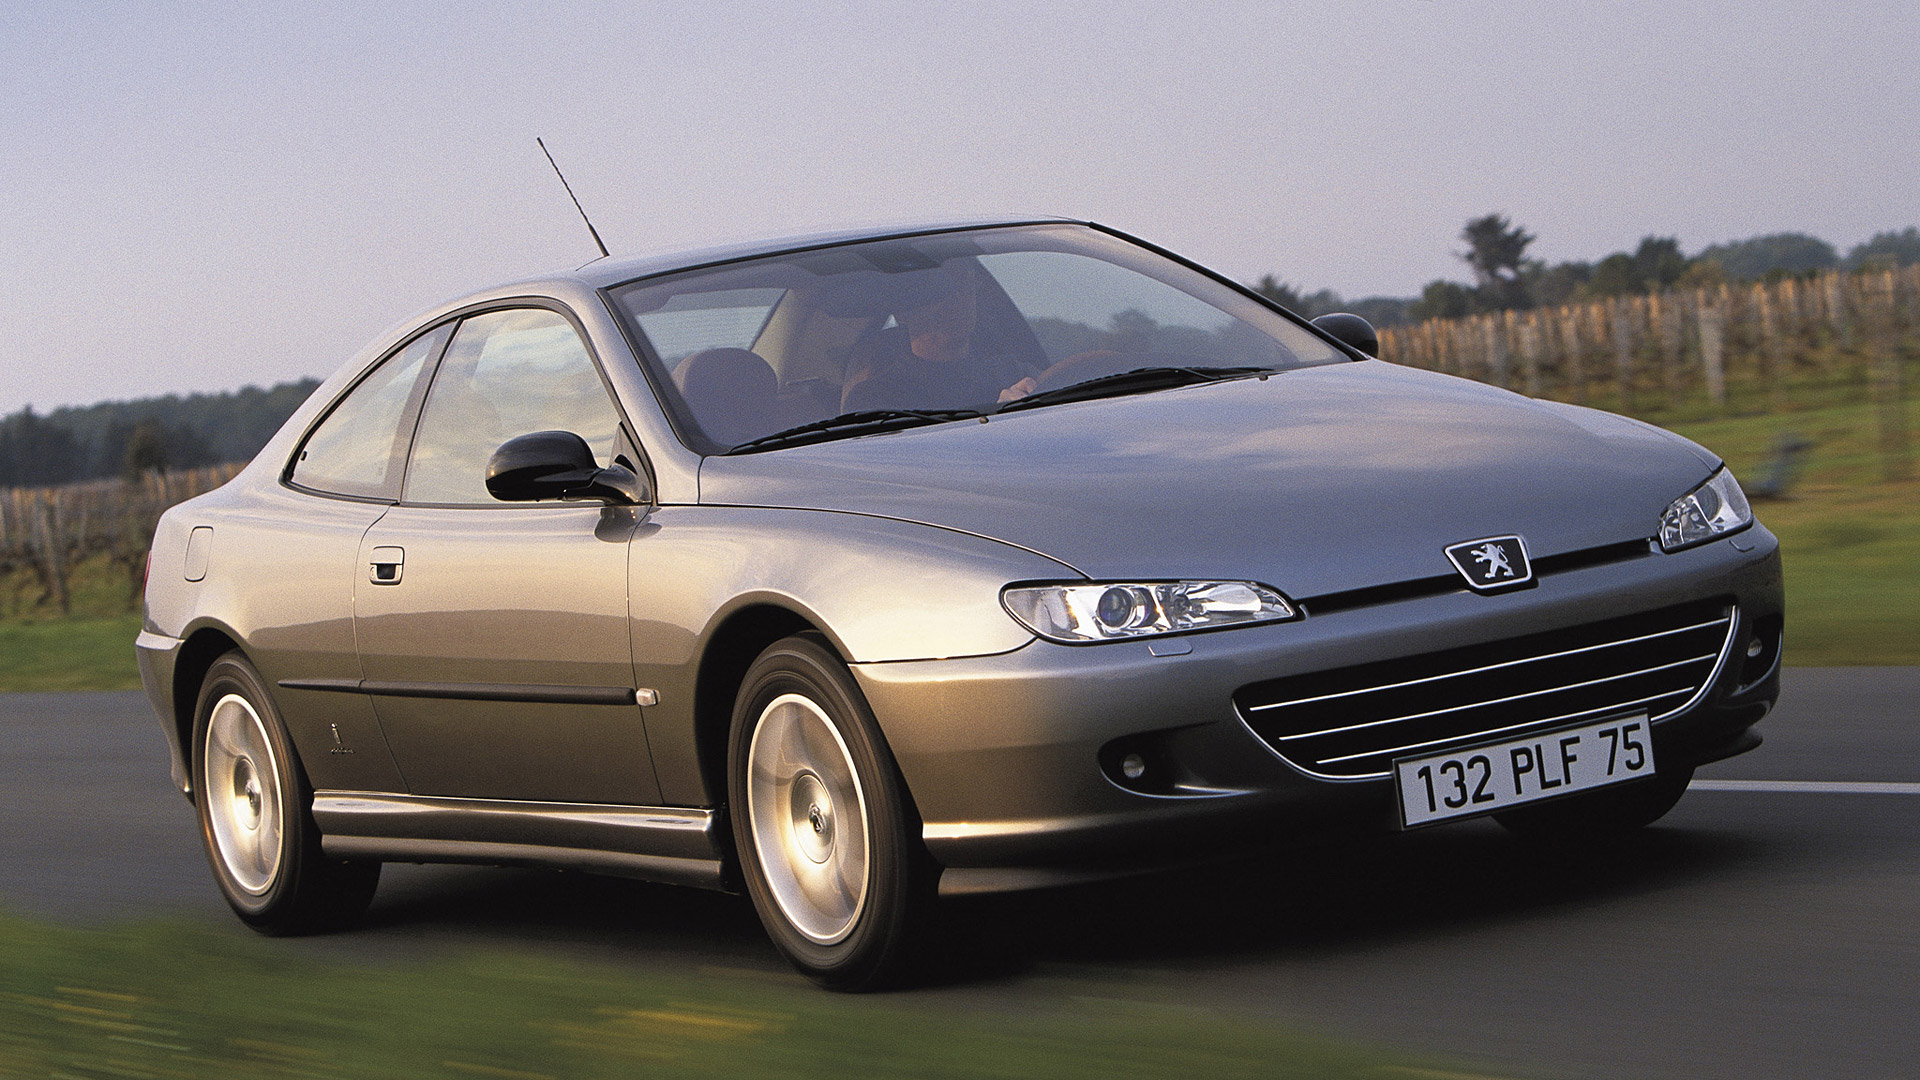 Peugeot 406 Coupe - coupe do 10 tysięcy